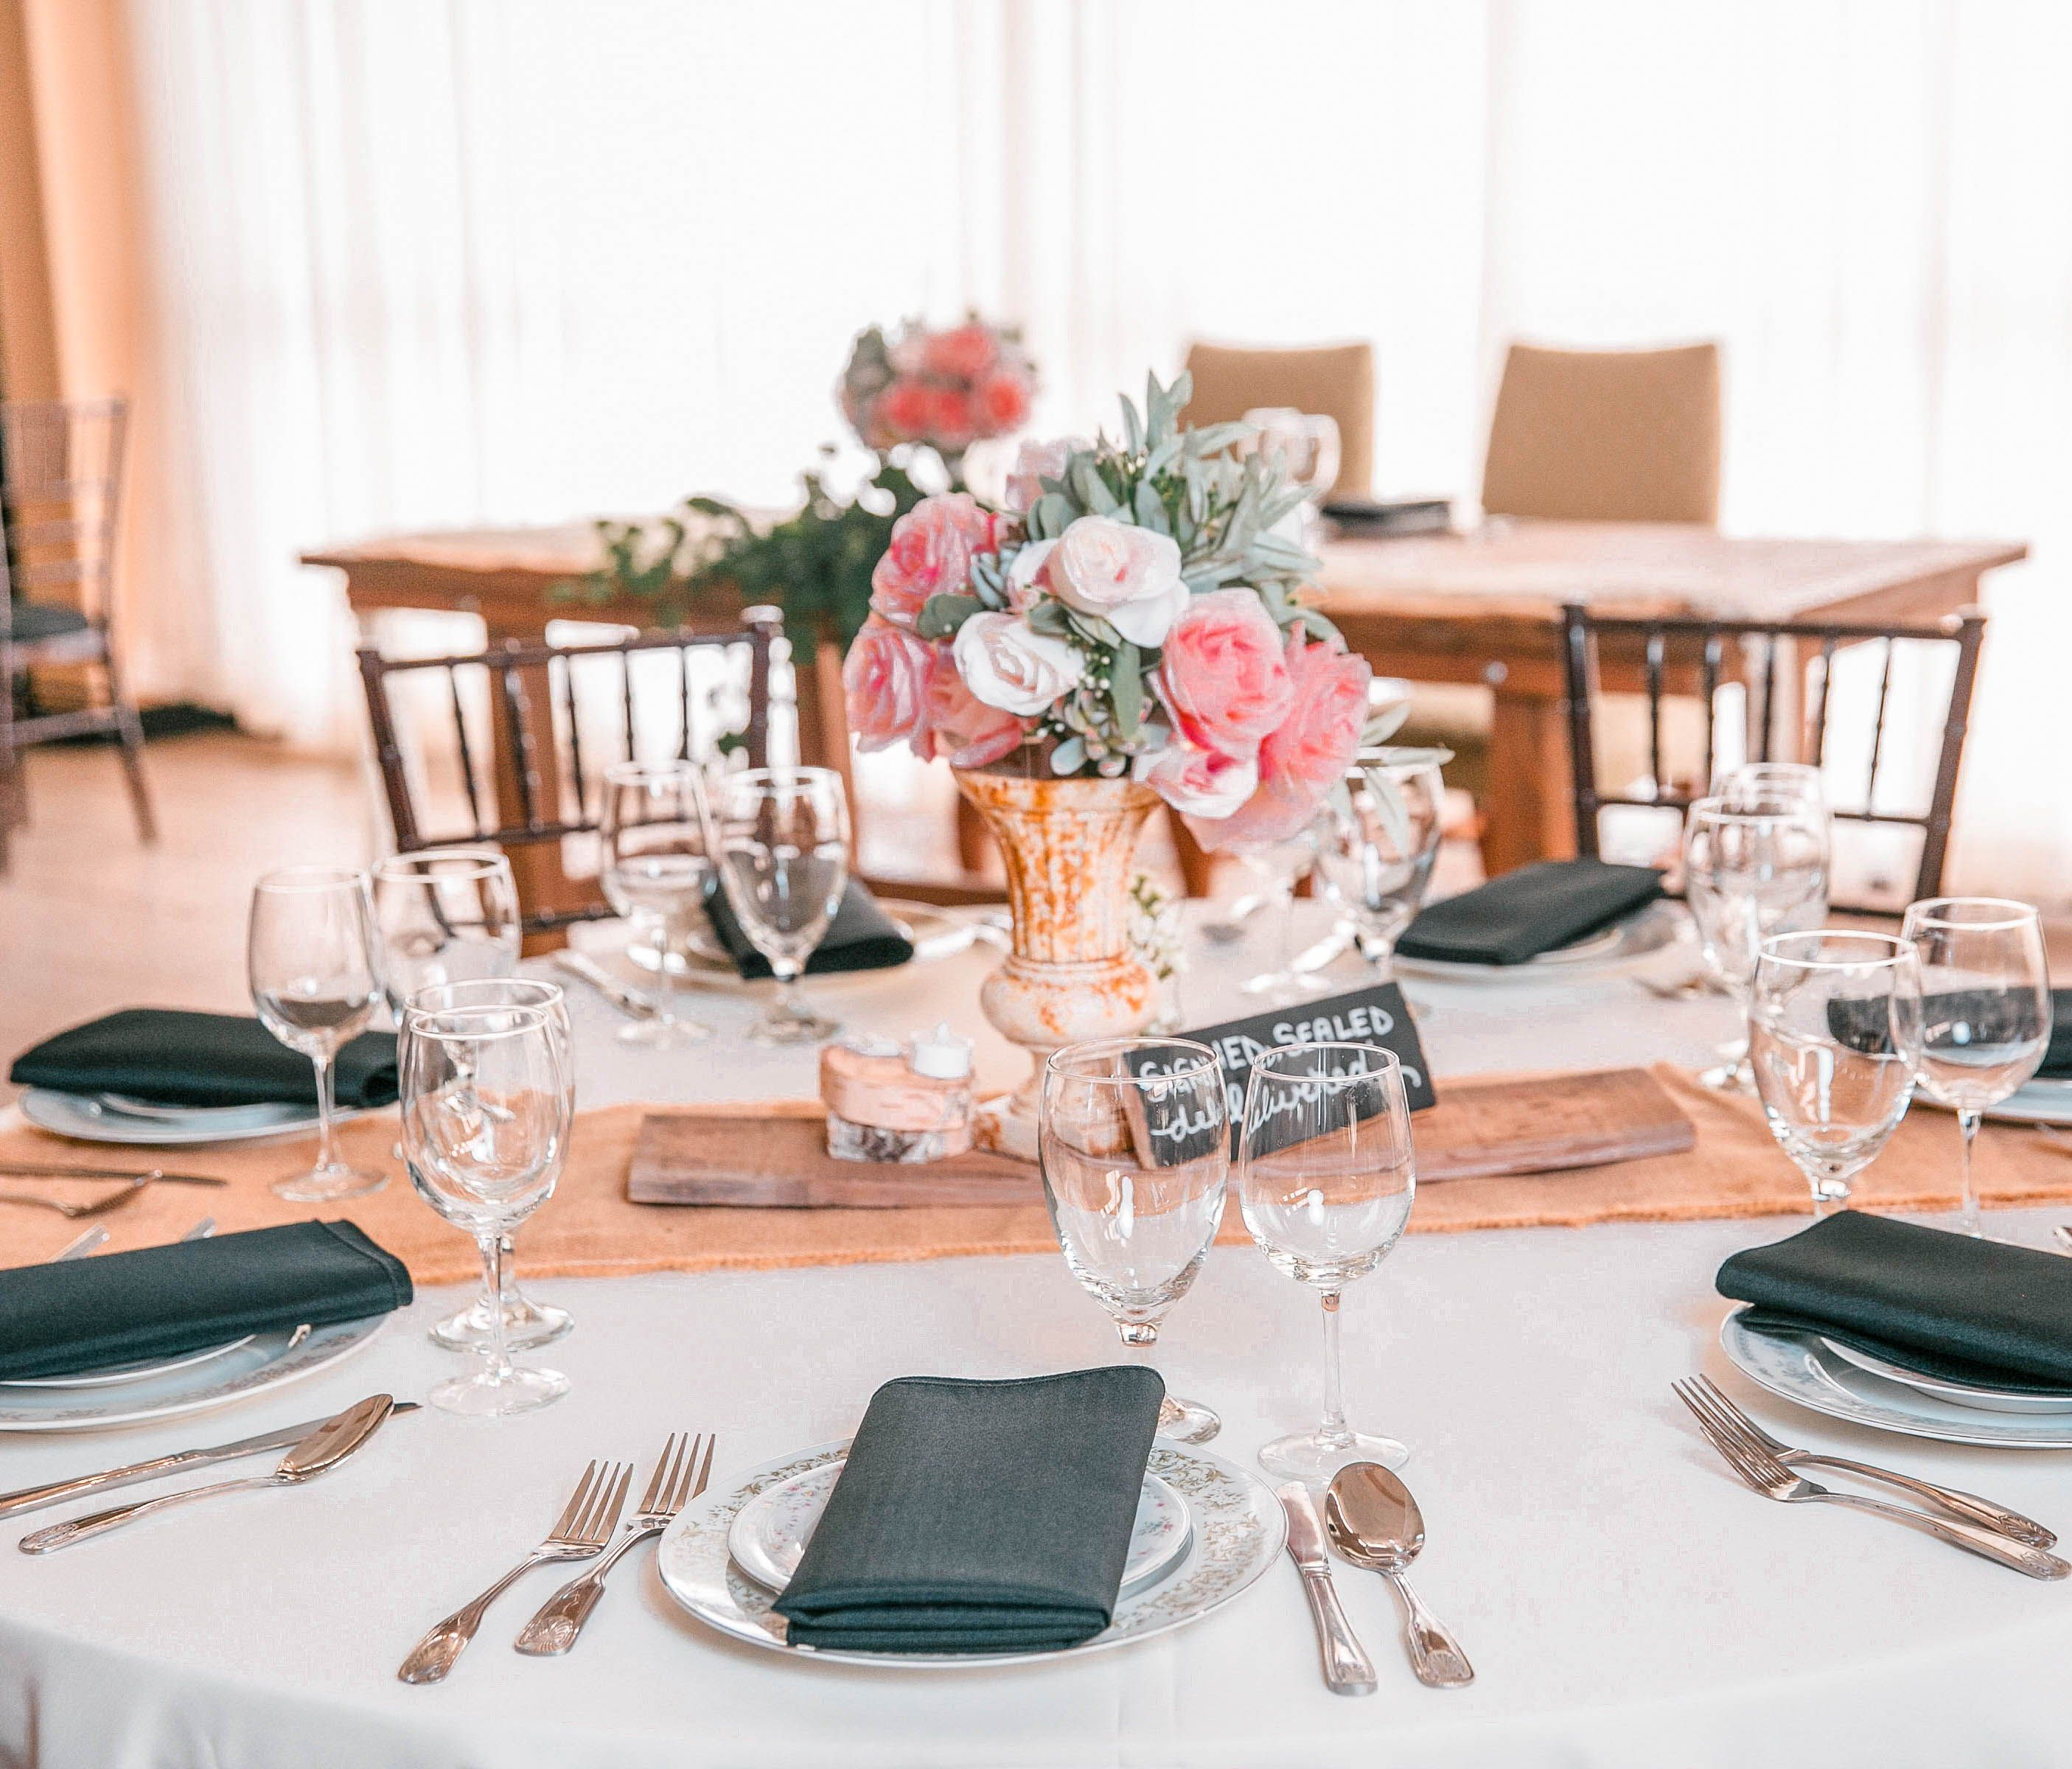 Do You Provide Tables Linens Chairs Plates Silverware And Glassware Or Will I Have To Rent Them Reception Table Design Event Center Wedding Decorations